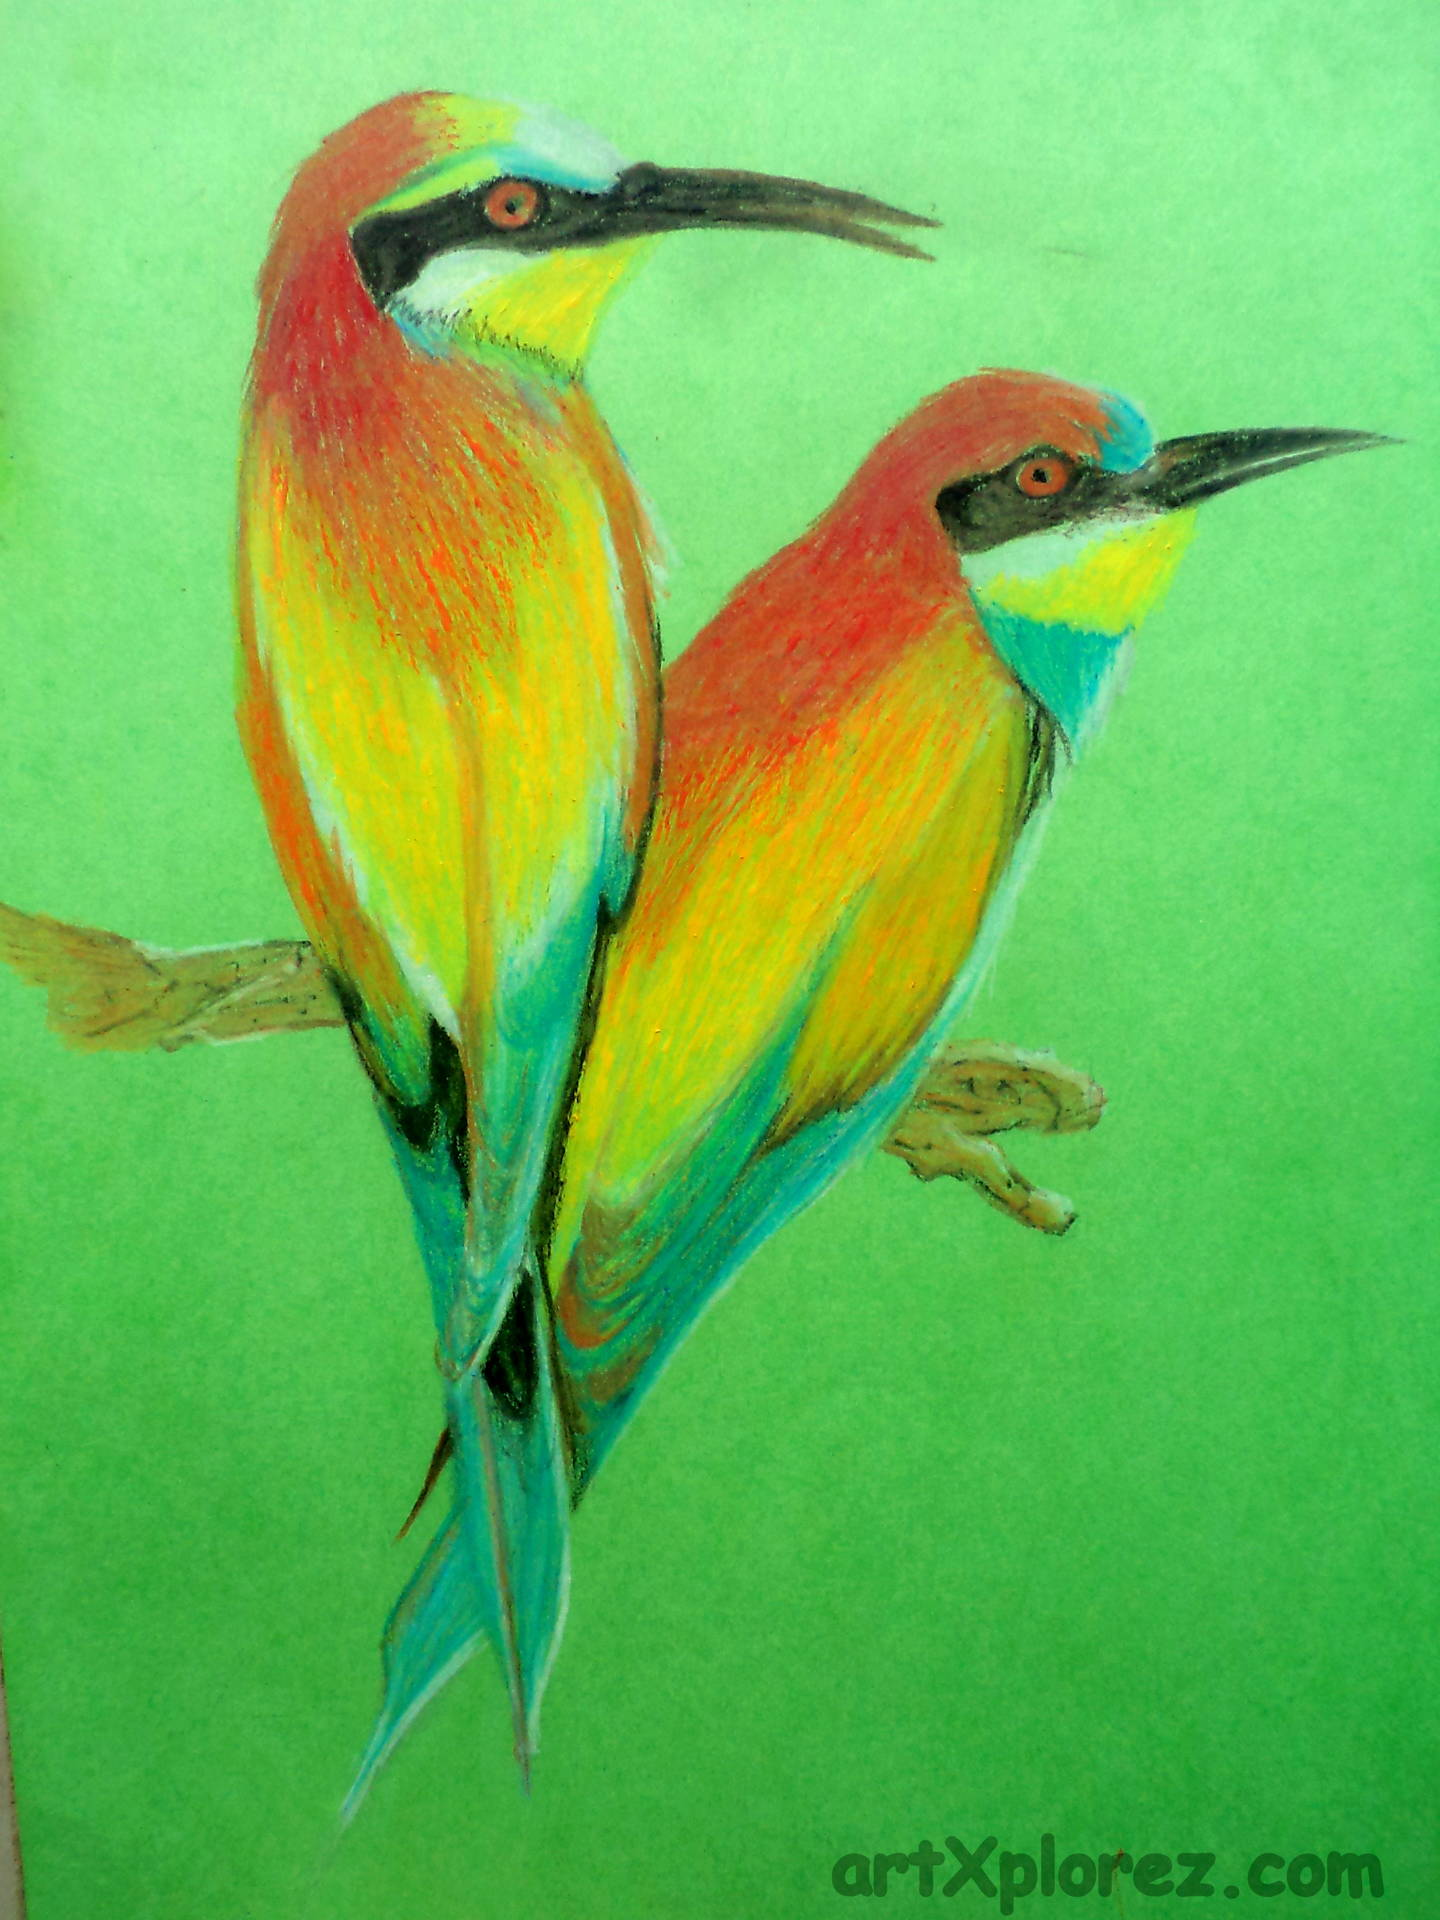 1440x1920 Drawing Birds Using Oil Pastels Artxplorez